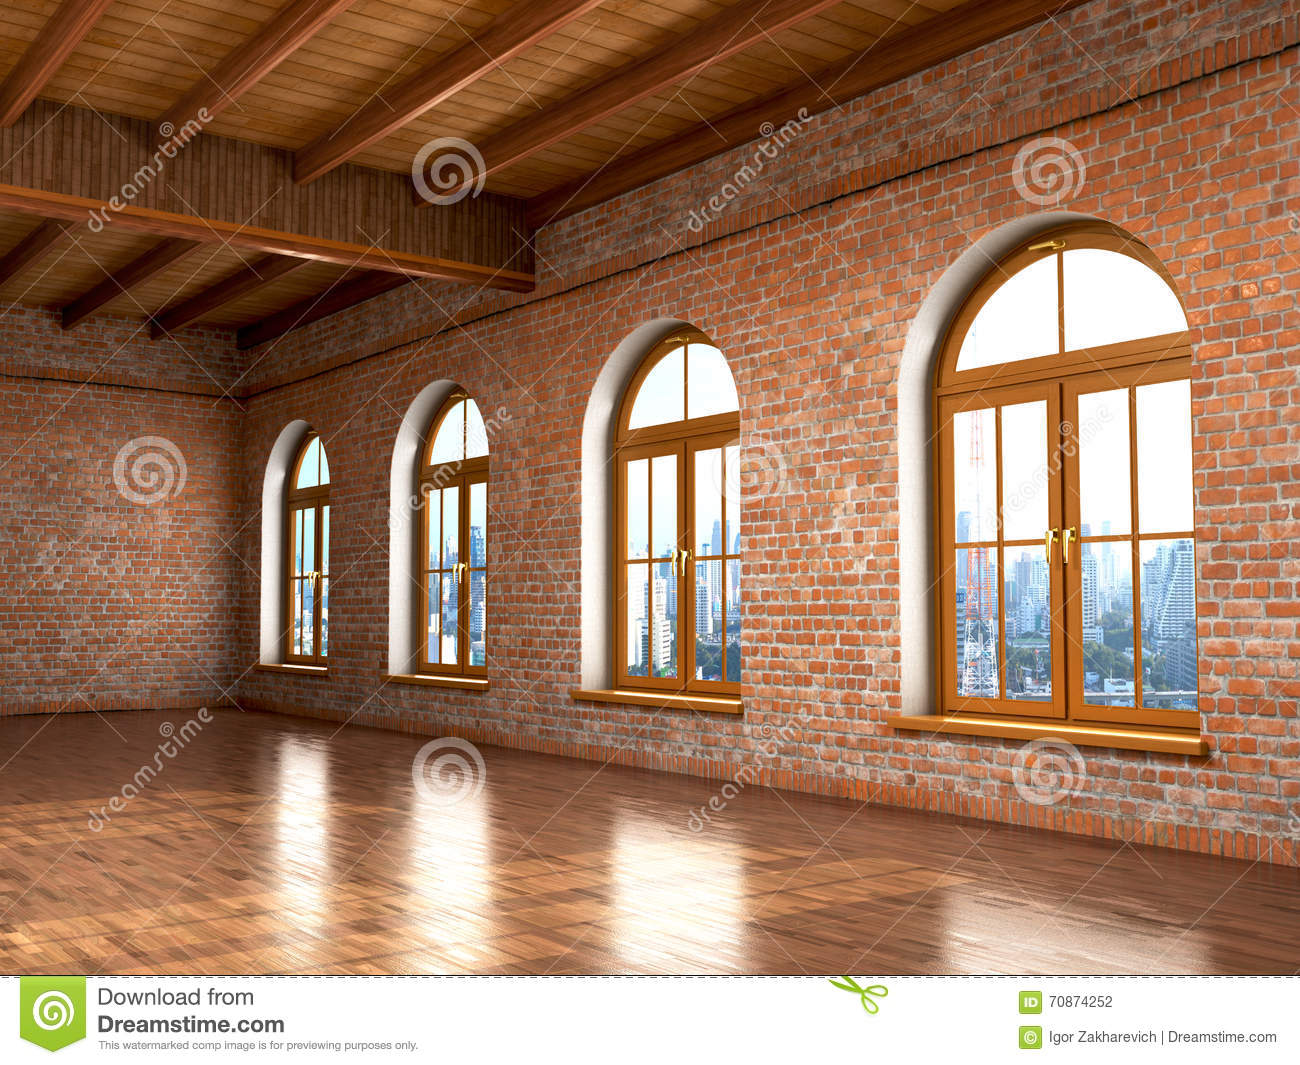 Loft Studio Interior In Old House Big Windows Brick Red